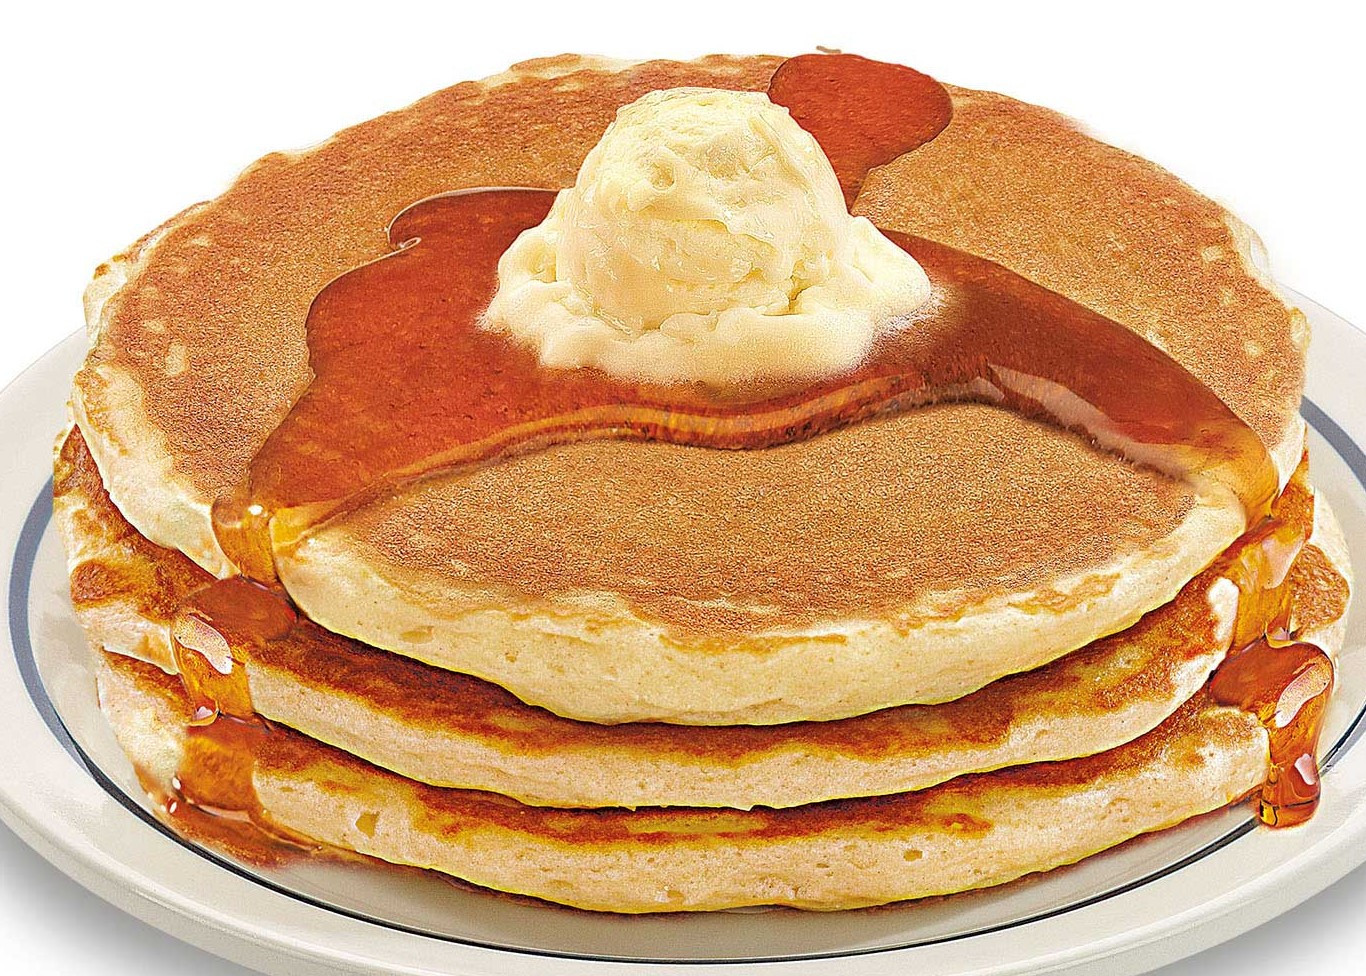 Short Stack Pancakes  IHOP offers 58 cent 'short stack' of pancakes today only